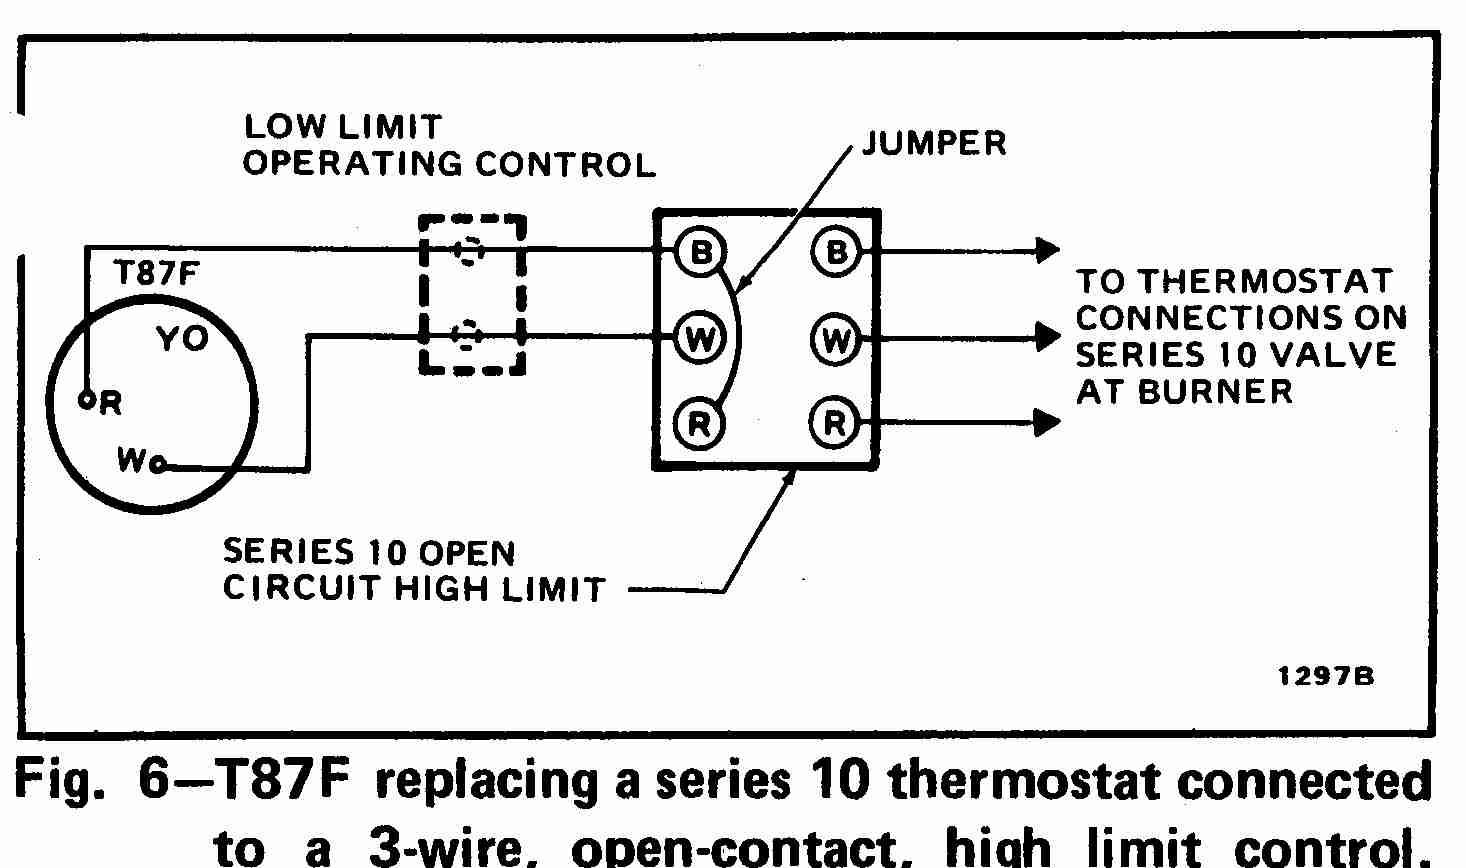 TT_T87F_0002_3WHL_DJF room thermostat wiring diagrams for hvac systems coleman evcon thermostat wiring diagram at crackthecode.co